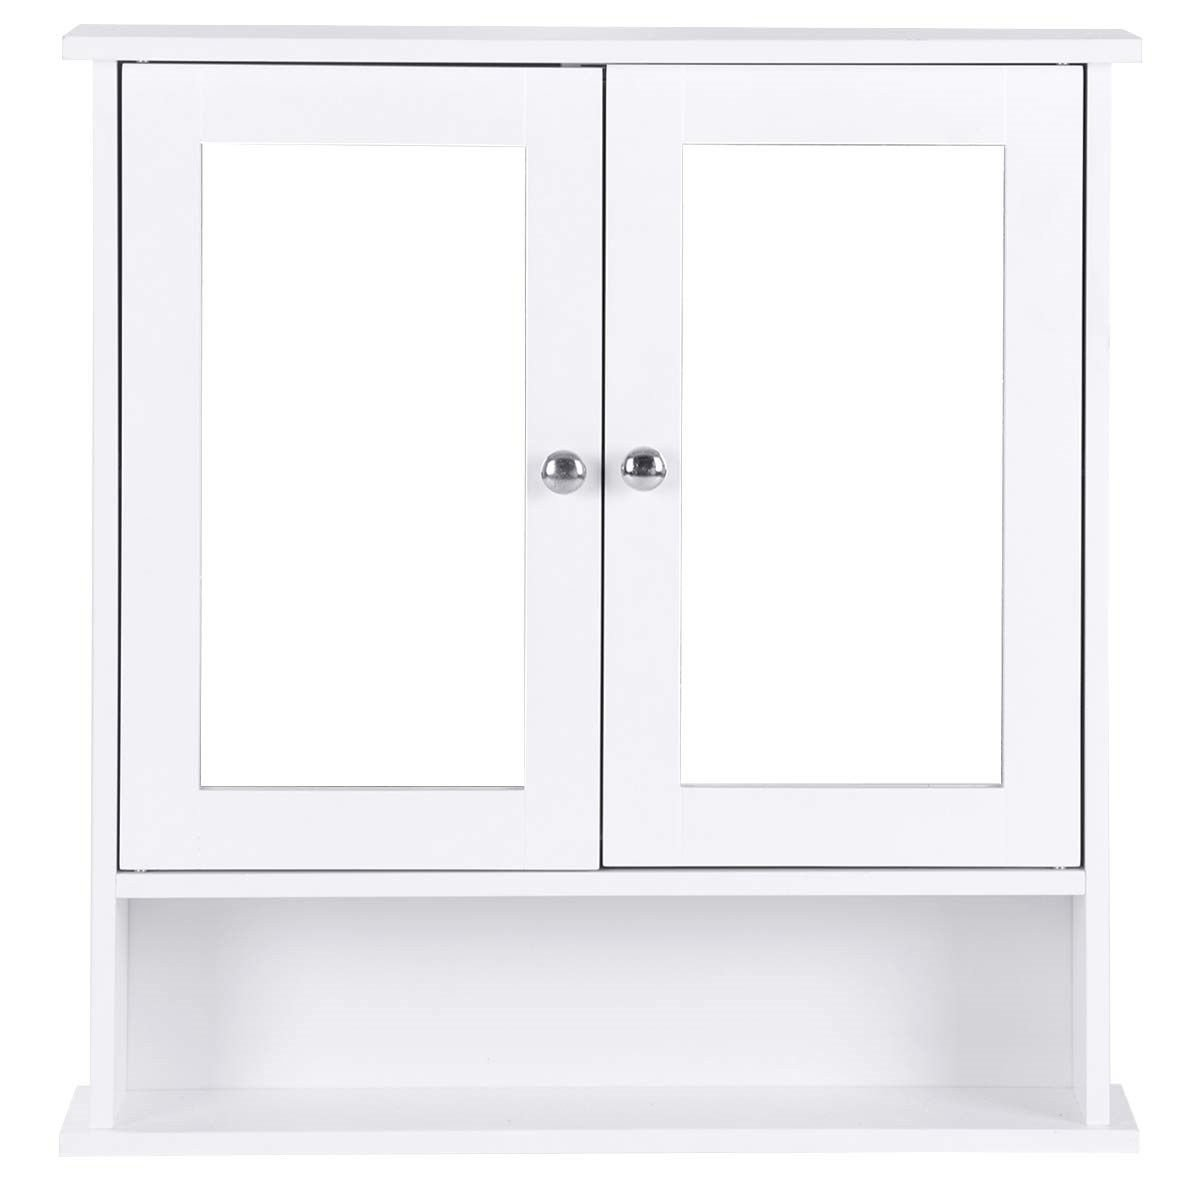 Hanna Bathroom Cabinet.